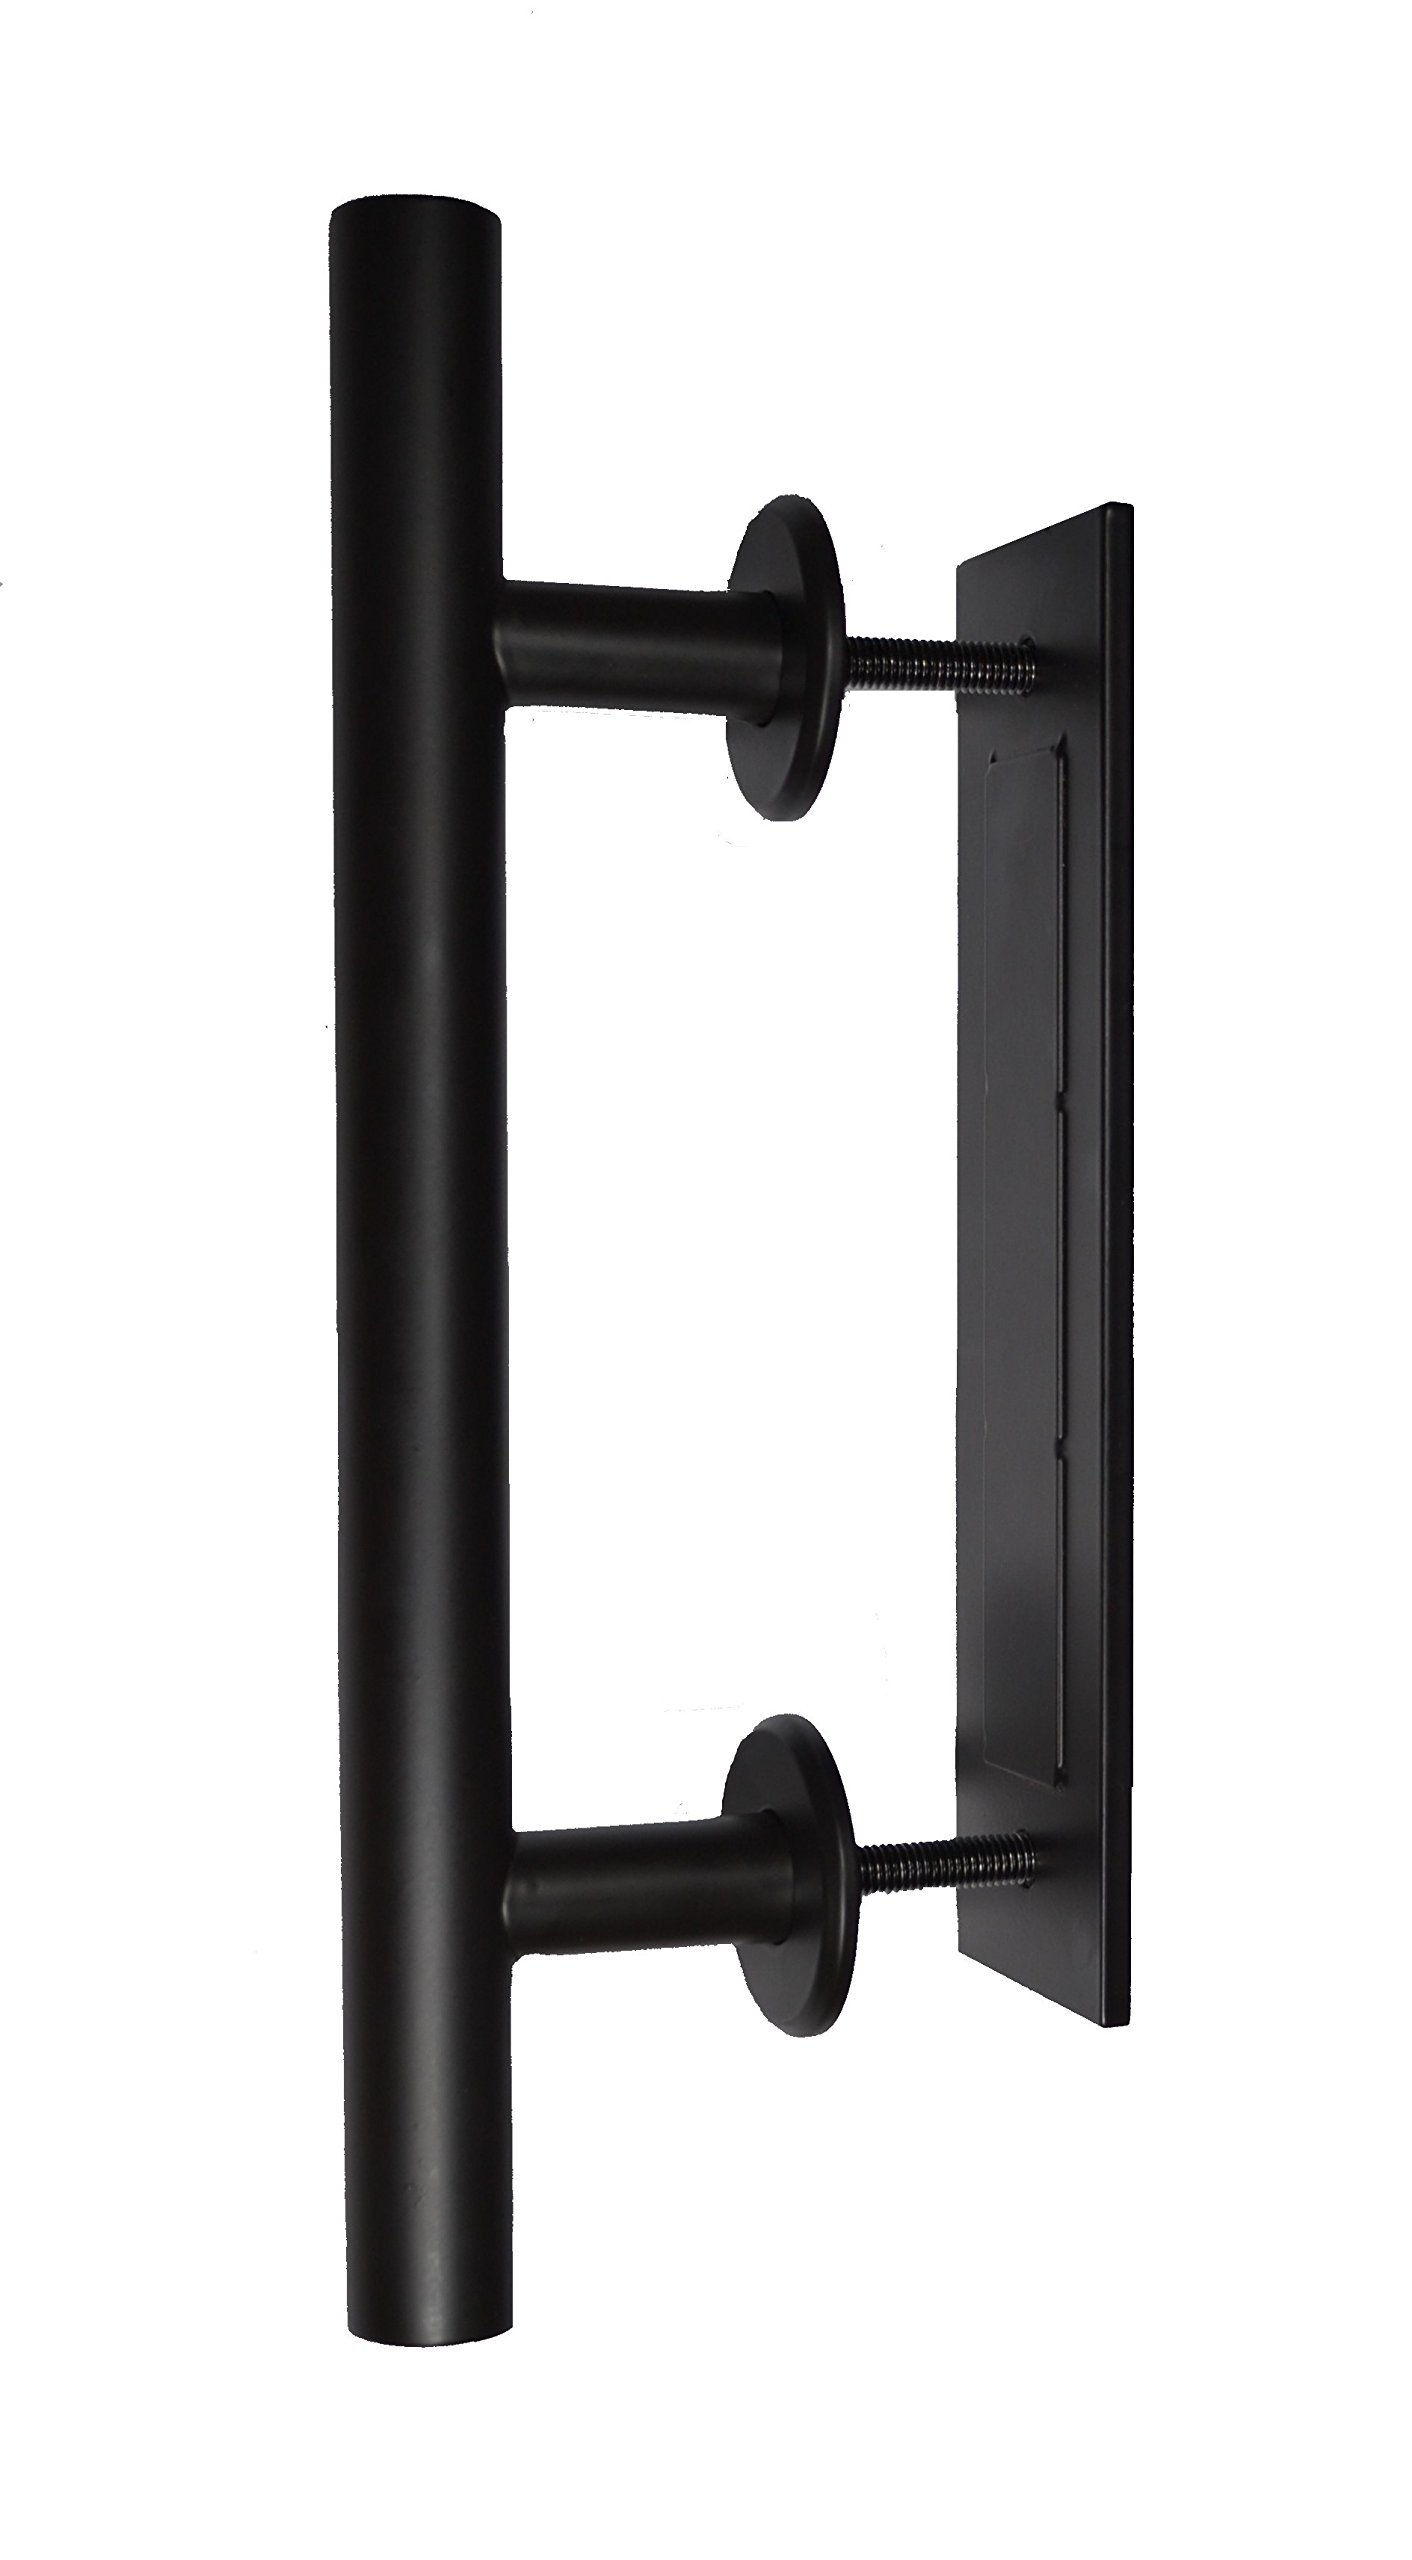 """AequHome 12"""" Sliding Barn Door Handle, Durable Steel Construction, Matte Black Finish, Suitable for Door Thickness 1 2/5"""" to 2 1/3"""", Includes Installation Bolts and Wrench"""